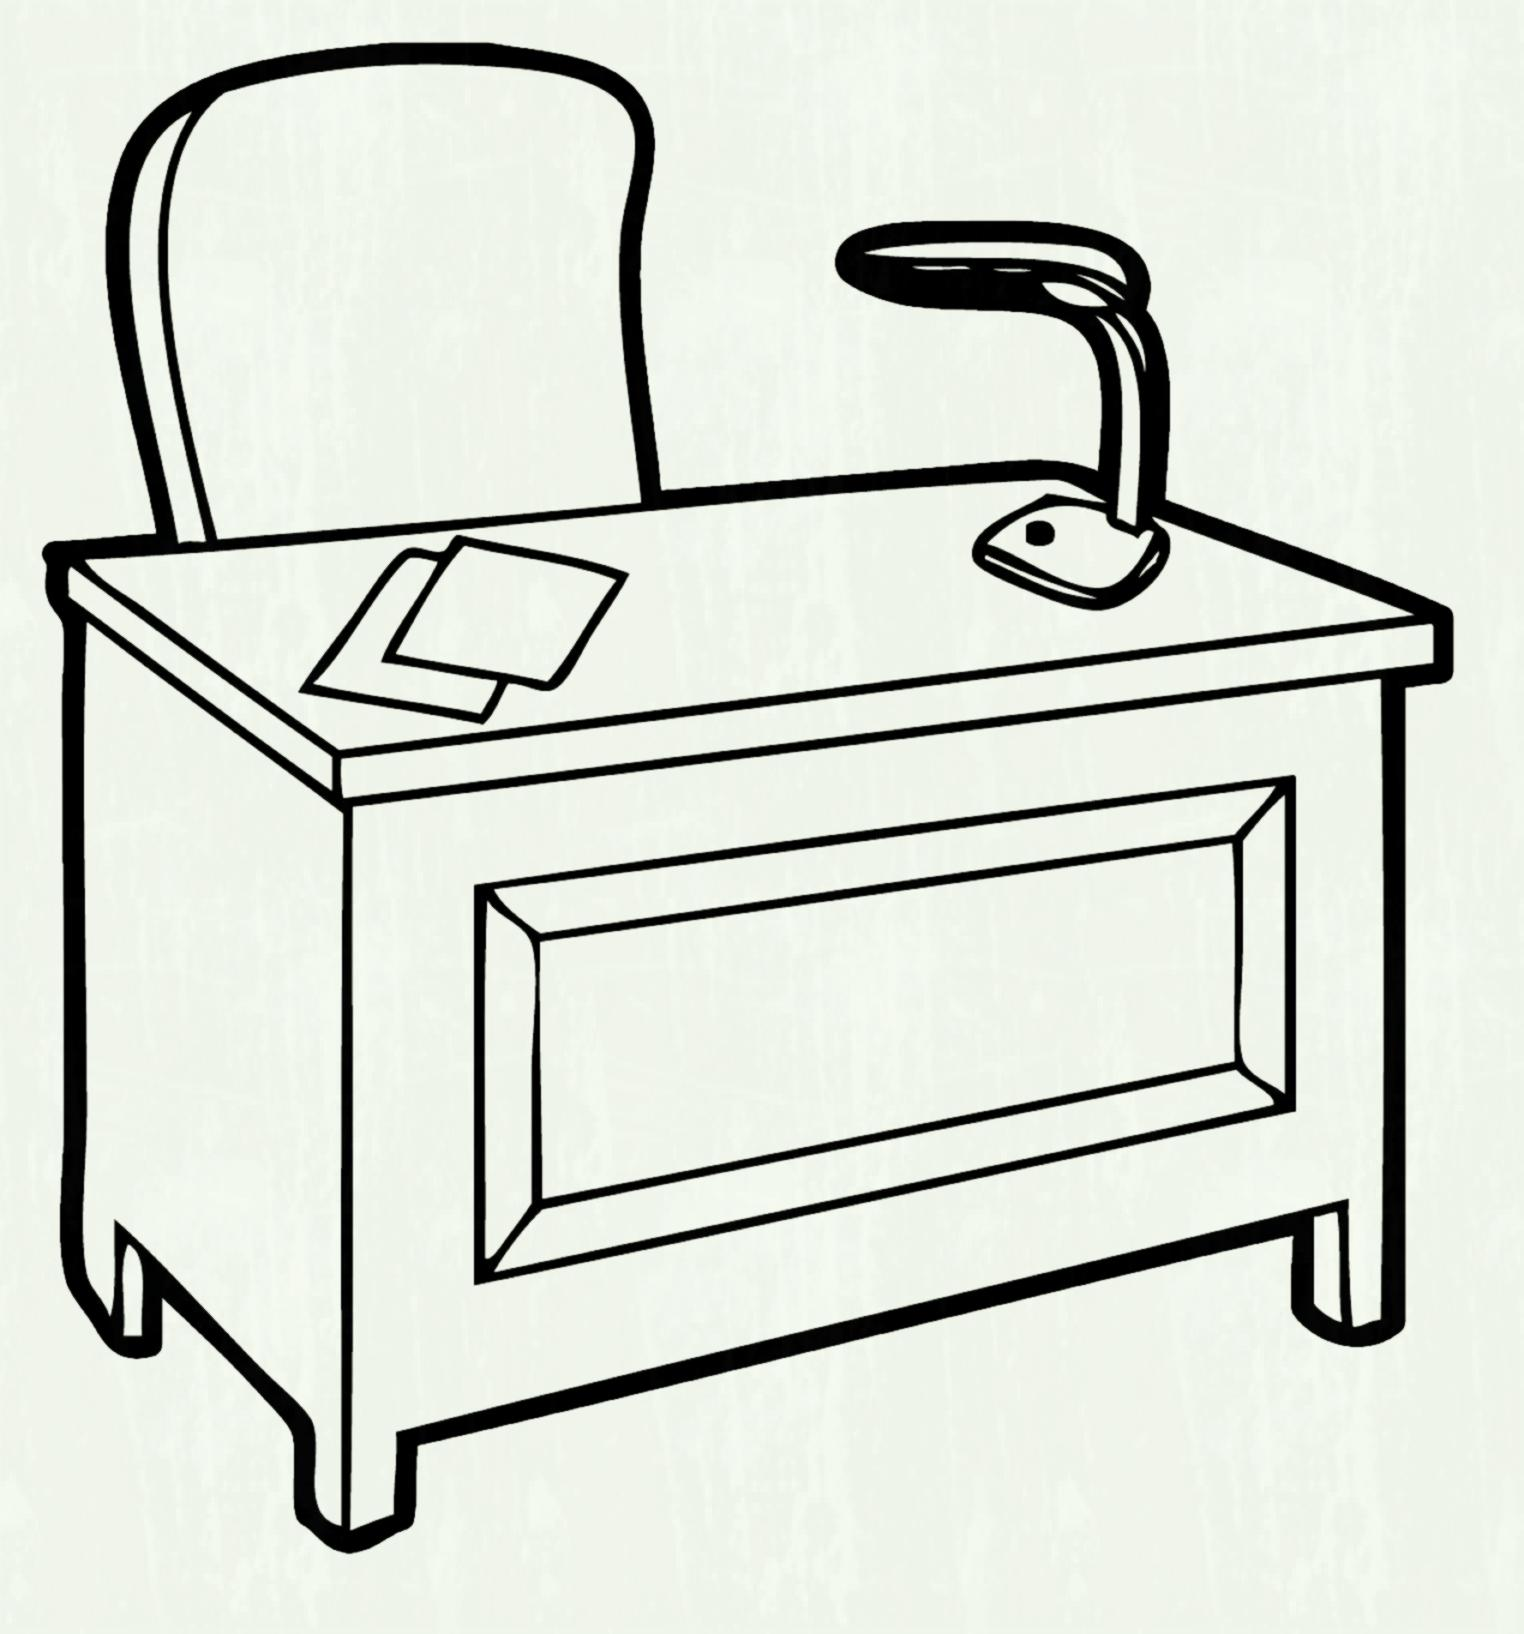 Desk clipart black and white 4 » Clipart Station.